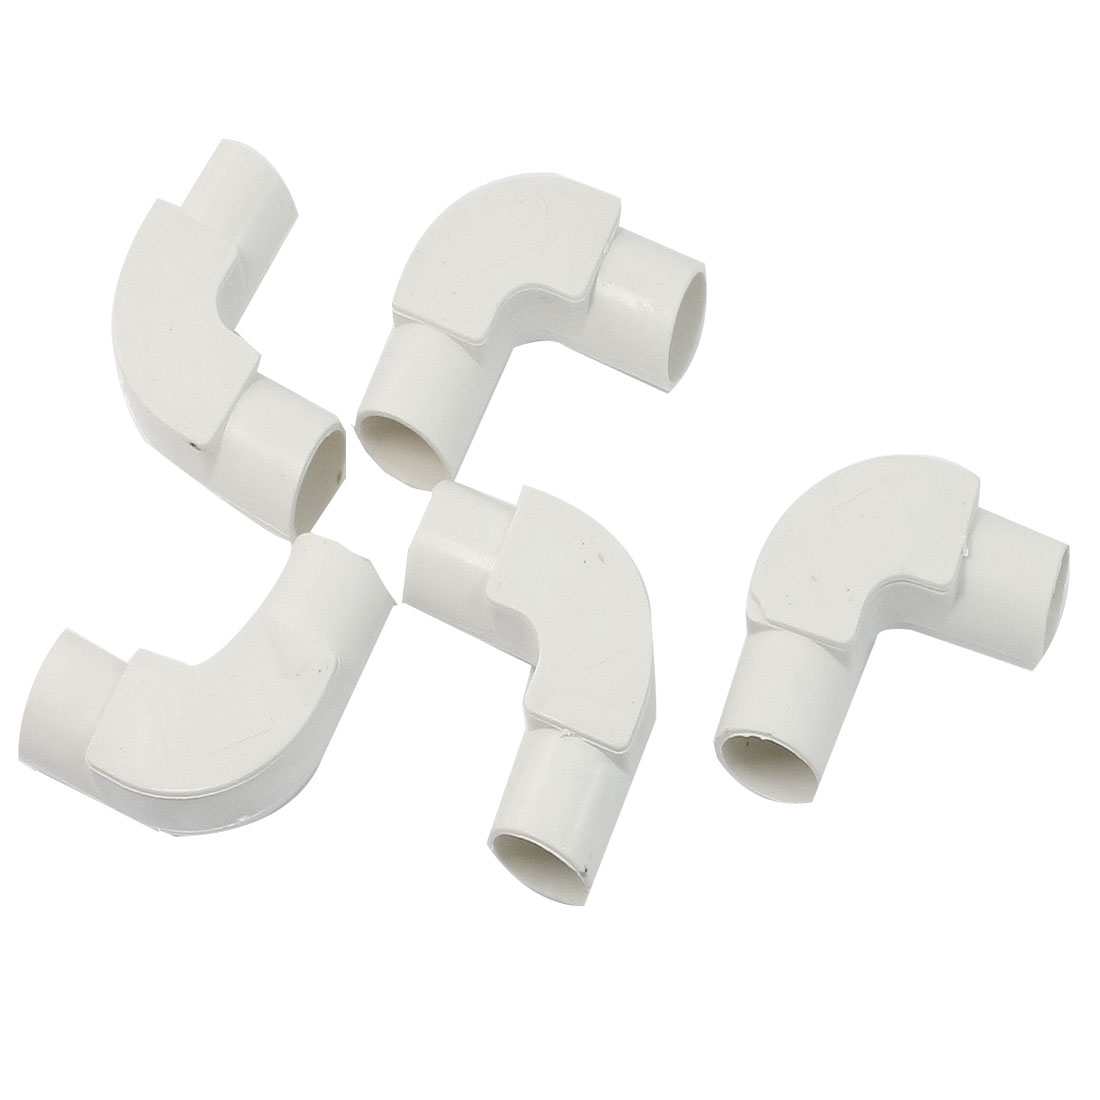 5 Pcs 20mm Inner Dia. 90 Degree Elbow White PVC Pipe Connectors w Cover